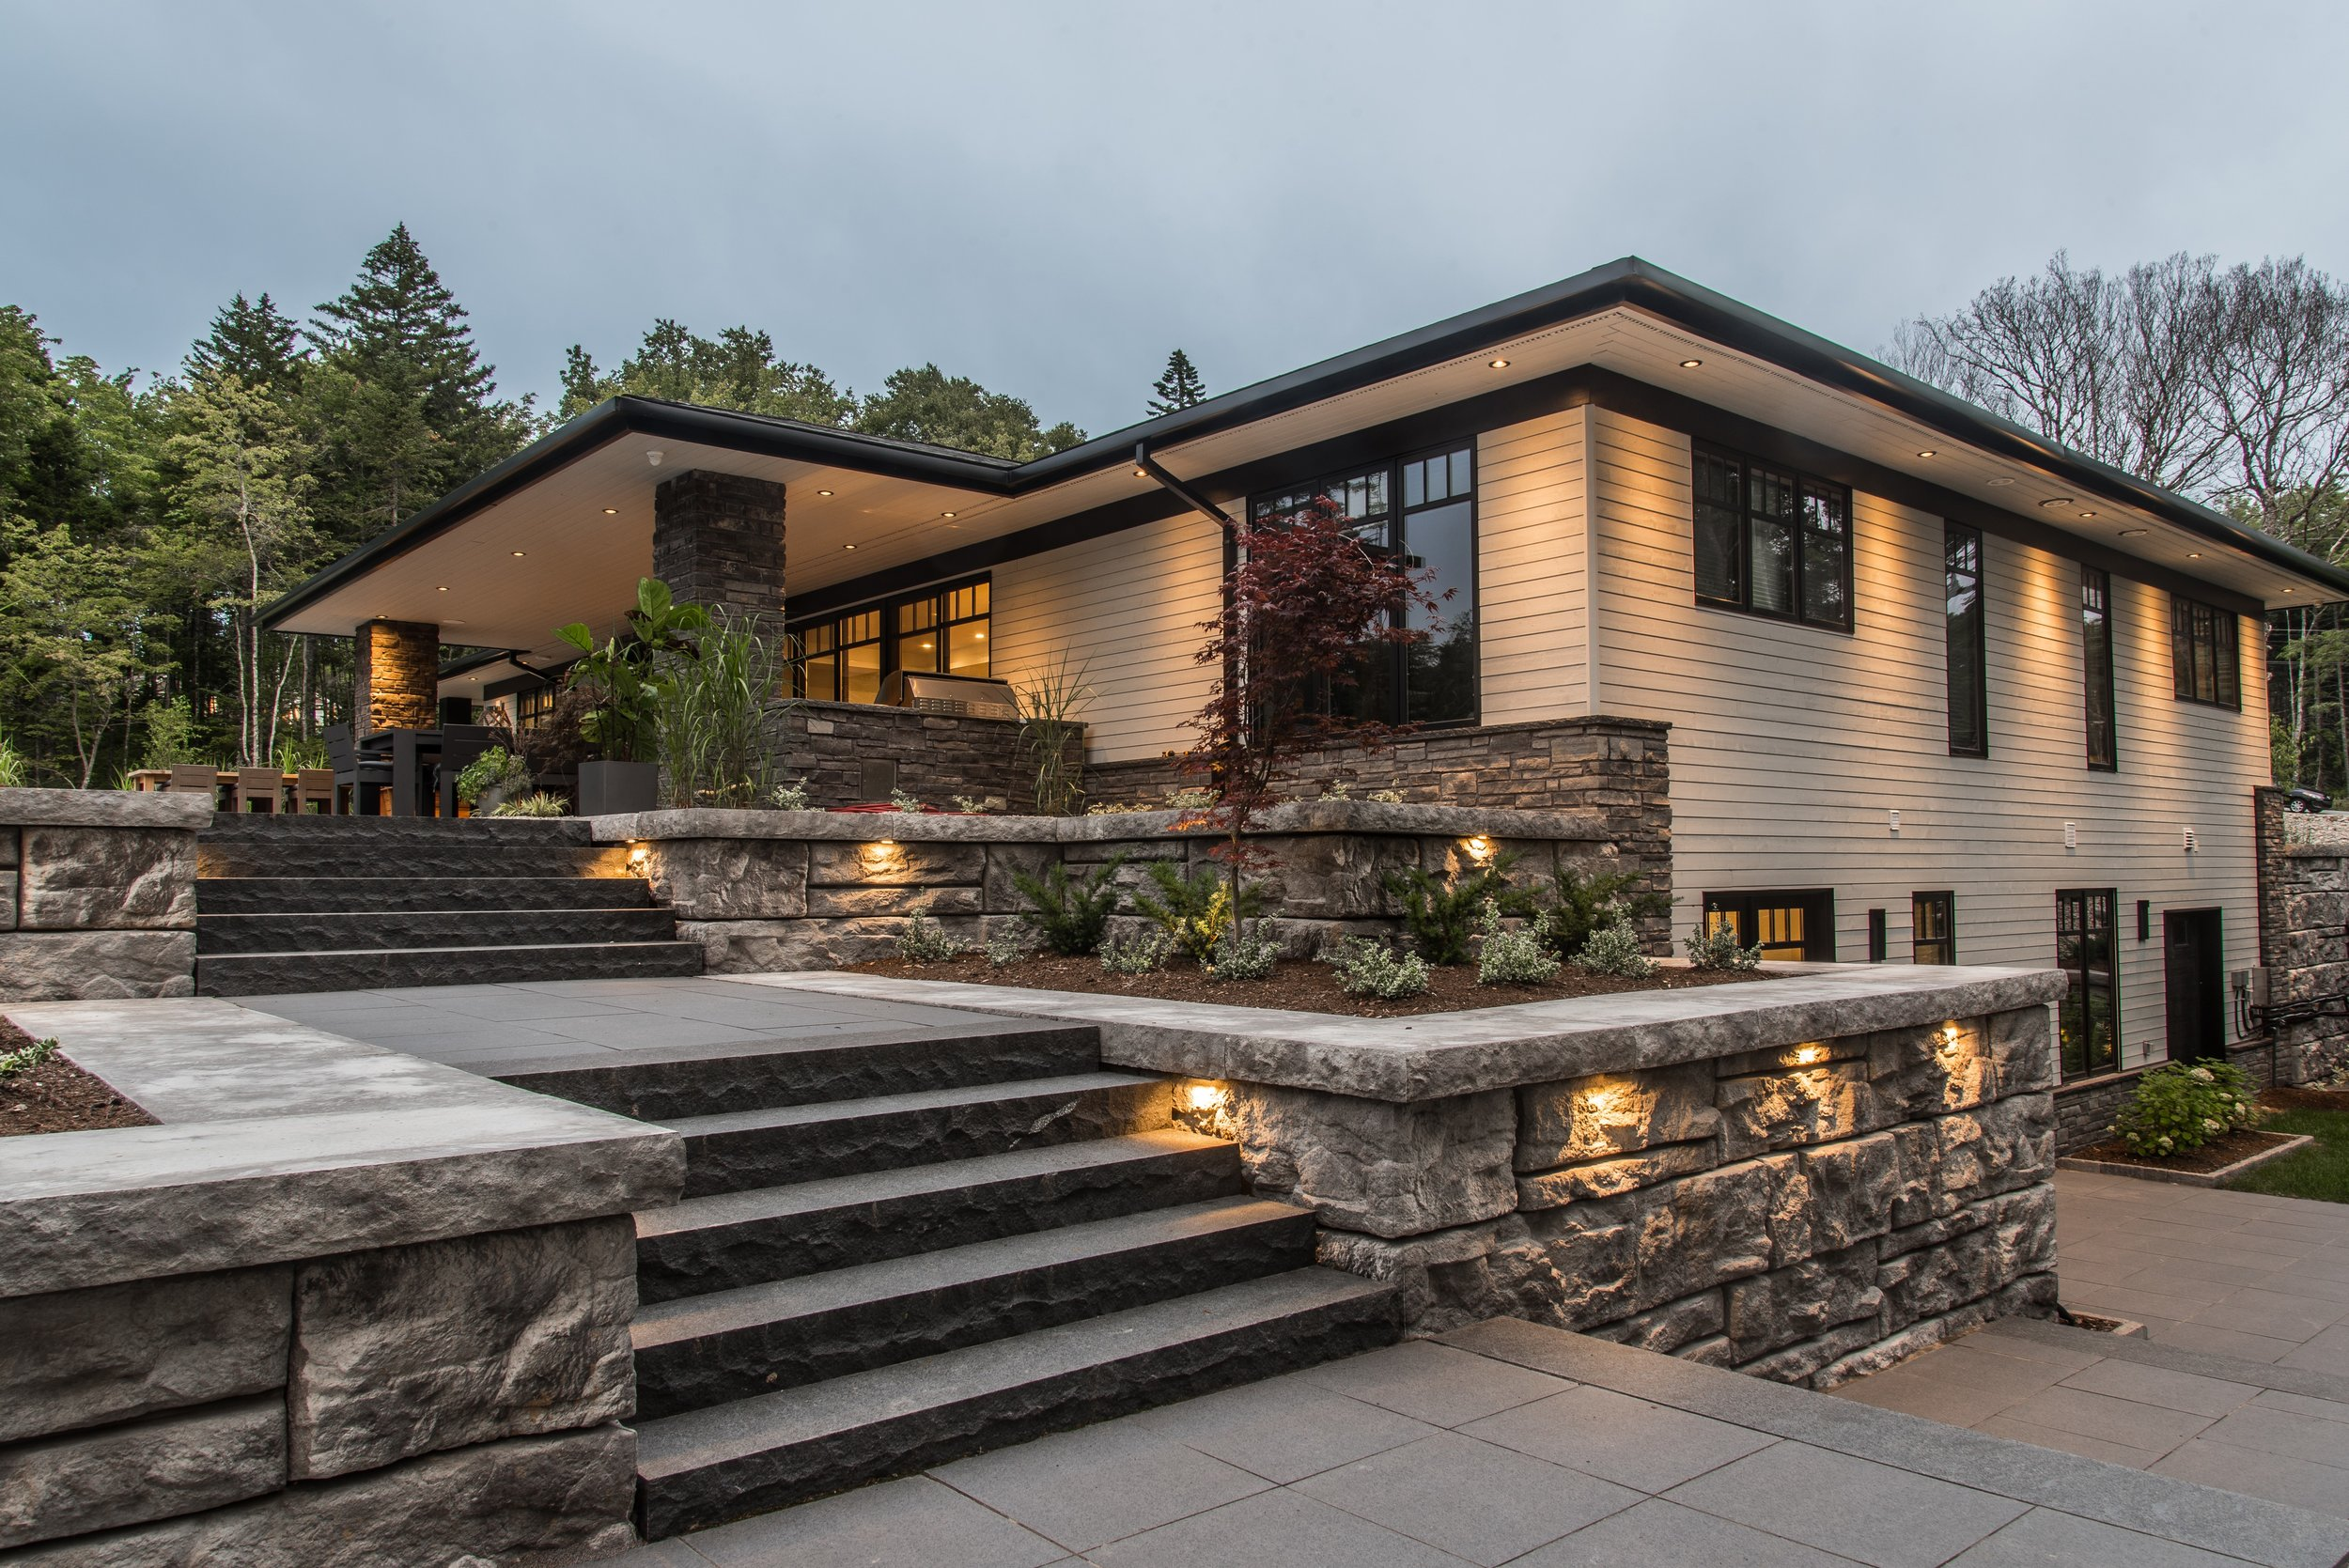 Executive Modern Build - This style is a blend of mid-century modern and the latest trends leaning towards sleek, contemporary design. This Home is characterized by clean, simple lines, a low-pitched gable roof, large black contemporary windows and a beautiful open floor plan.